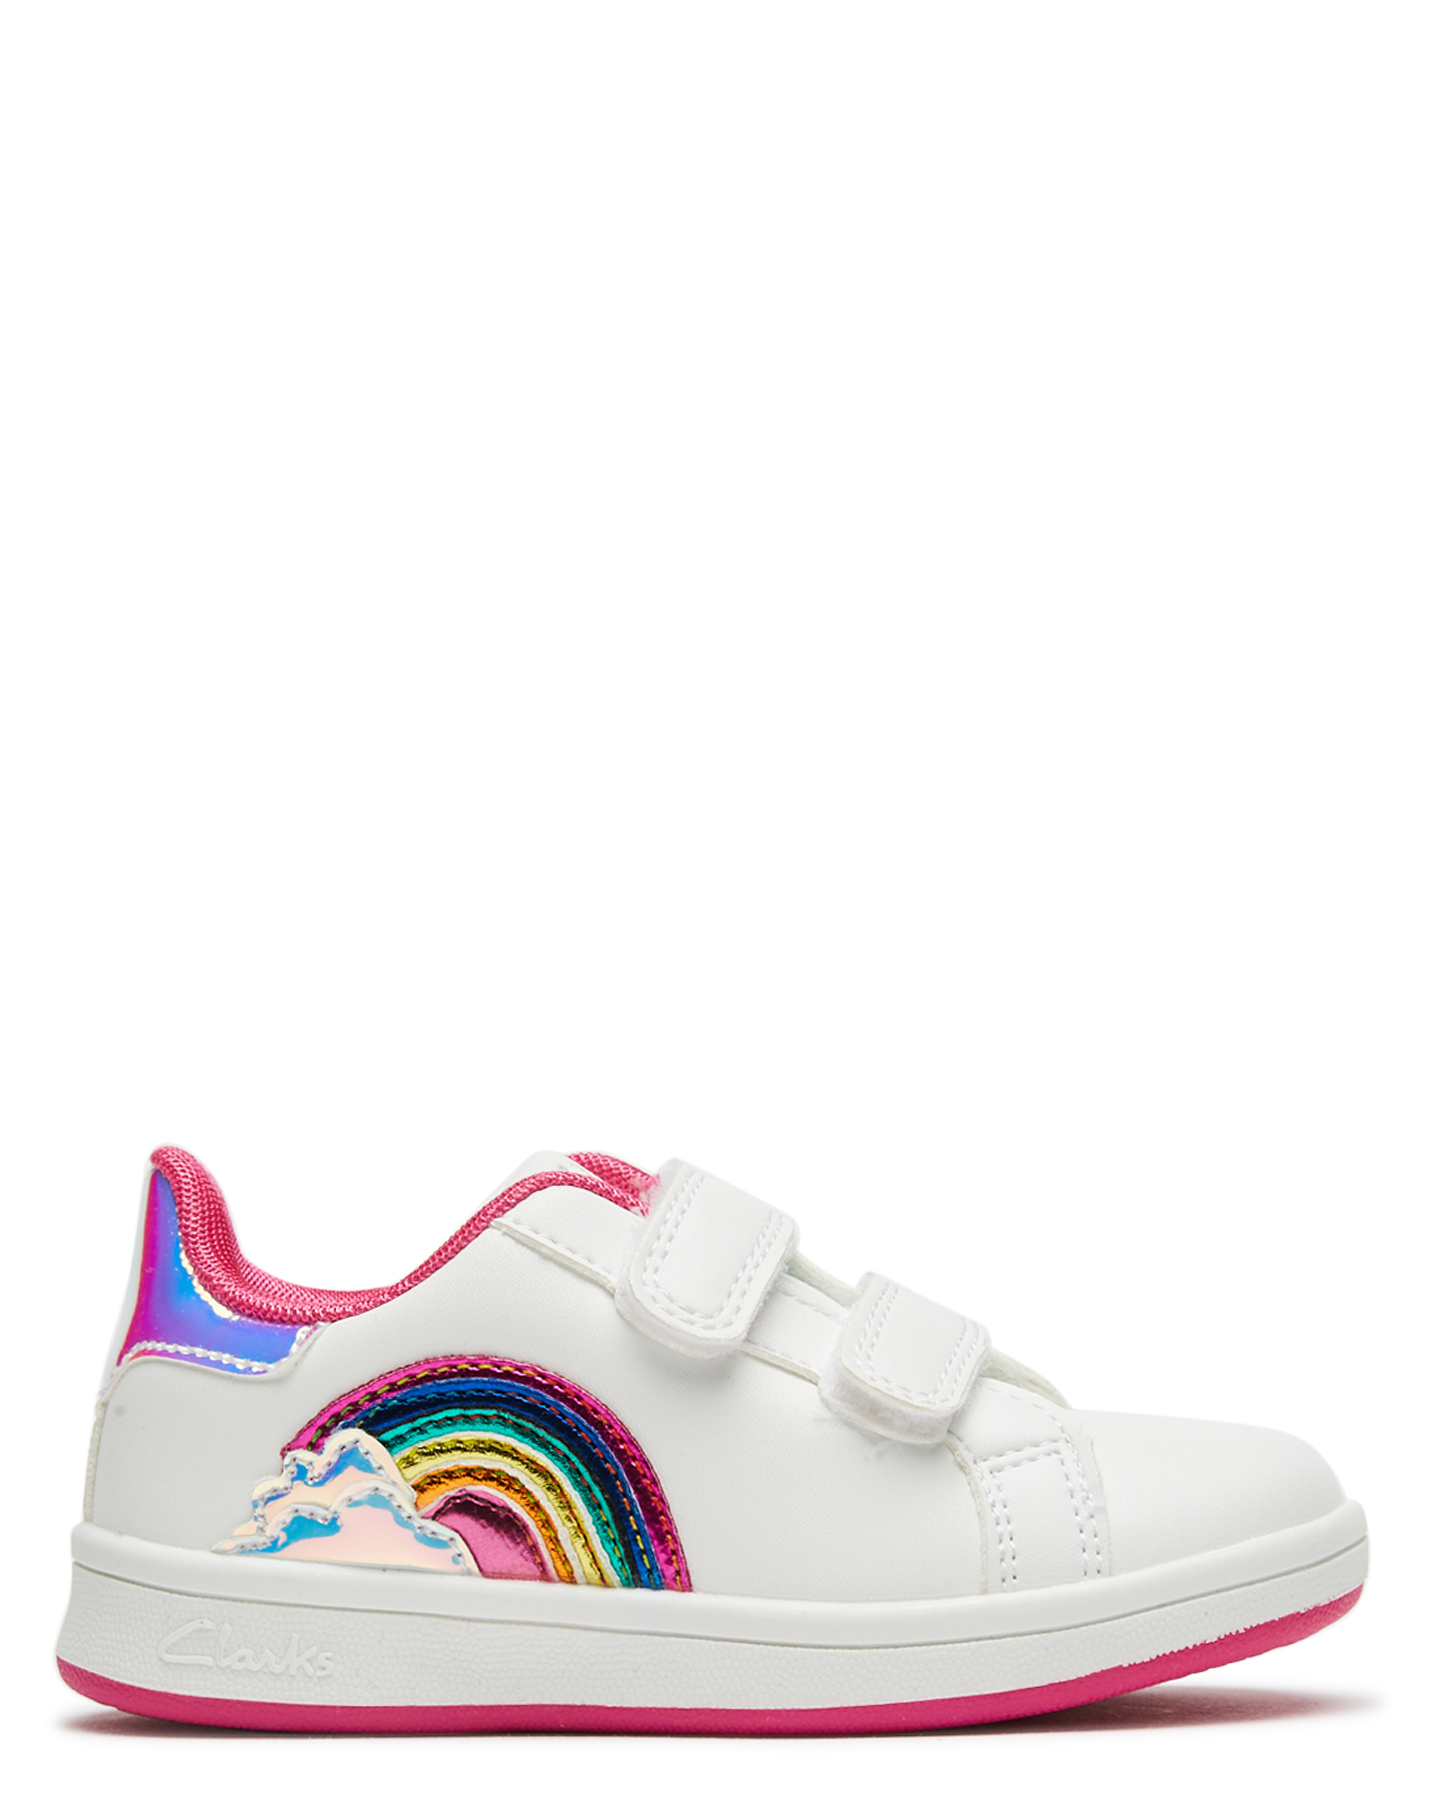 Clarks Girls Dorothy Shoe - Youth -Eu- Bright Combo E+ Bright Combo E+